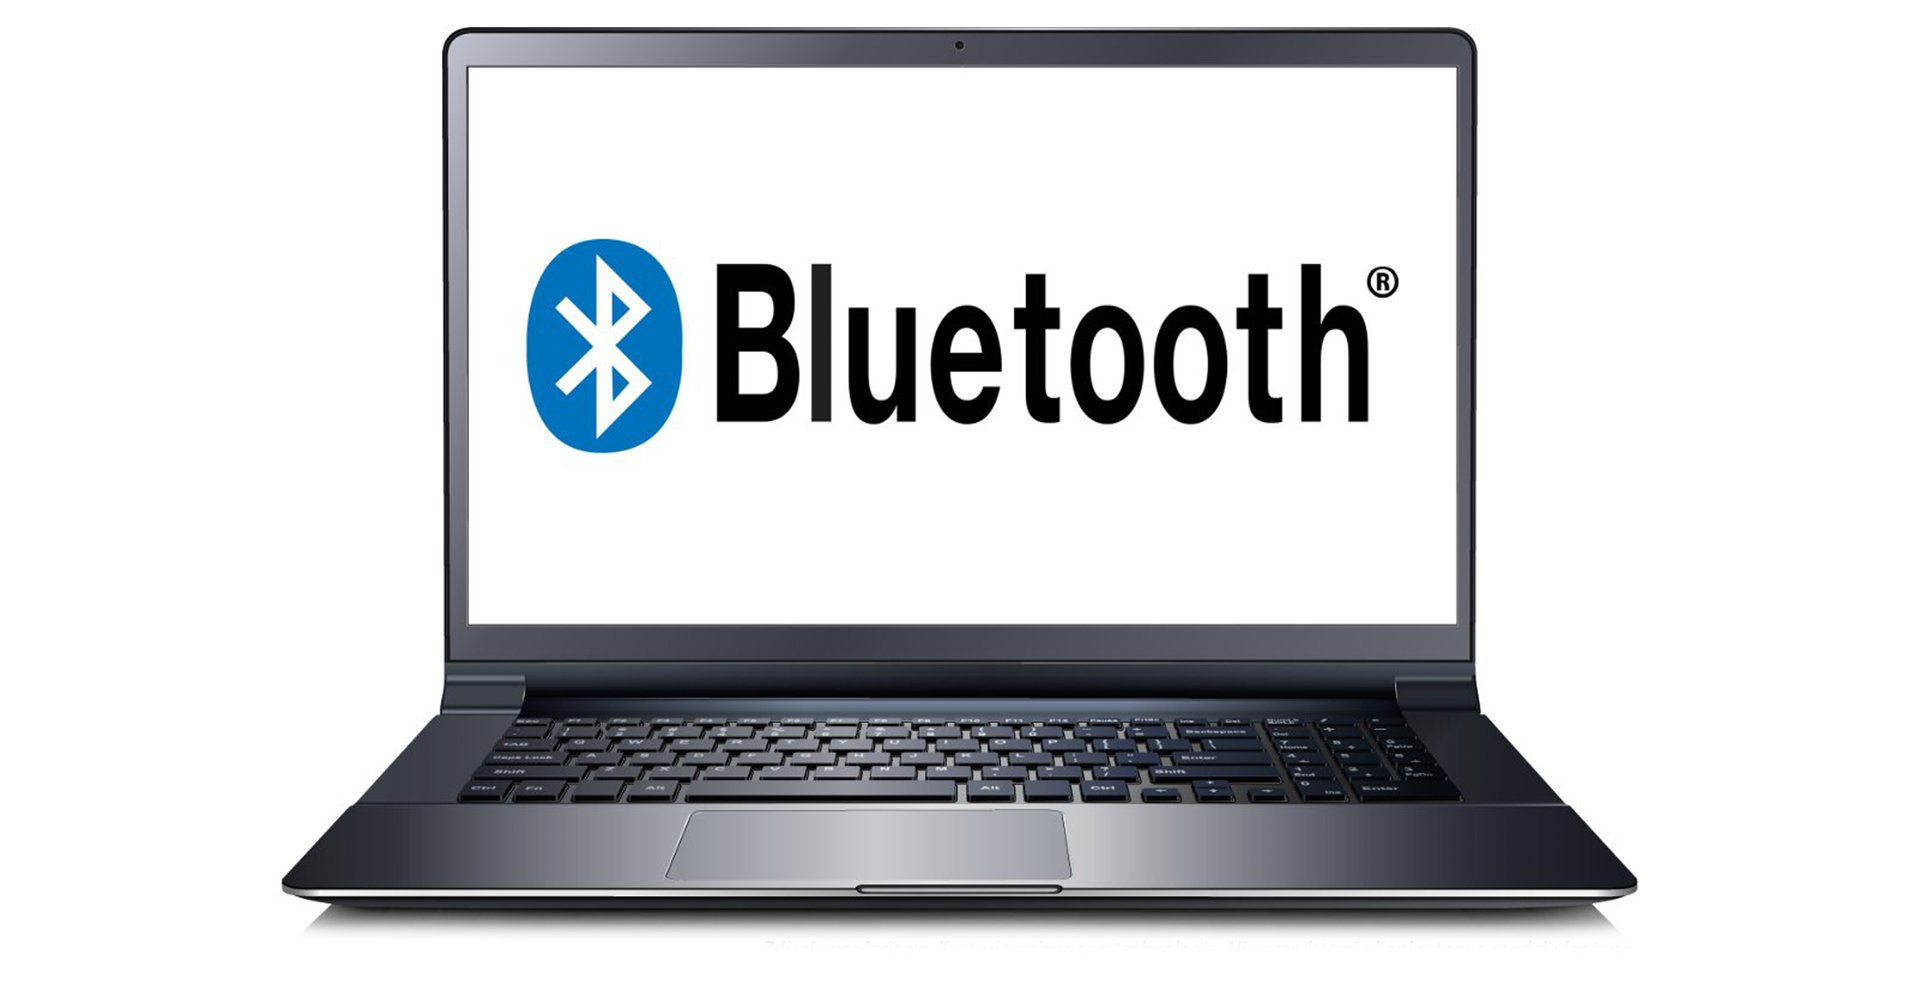 Dell G5 15 5587 i5-8300H 8GB 1TB + 128GB Linux                             Bluetooth